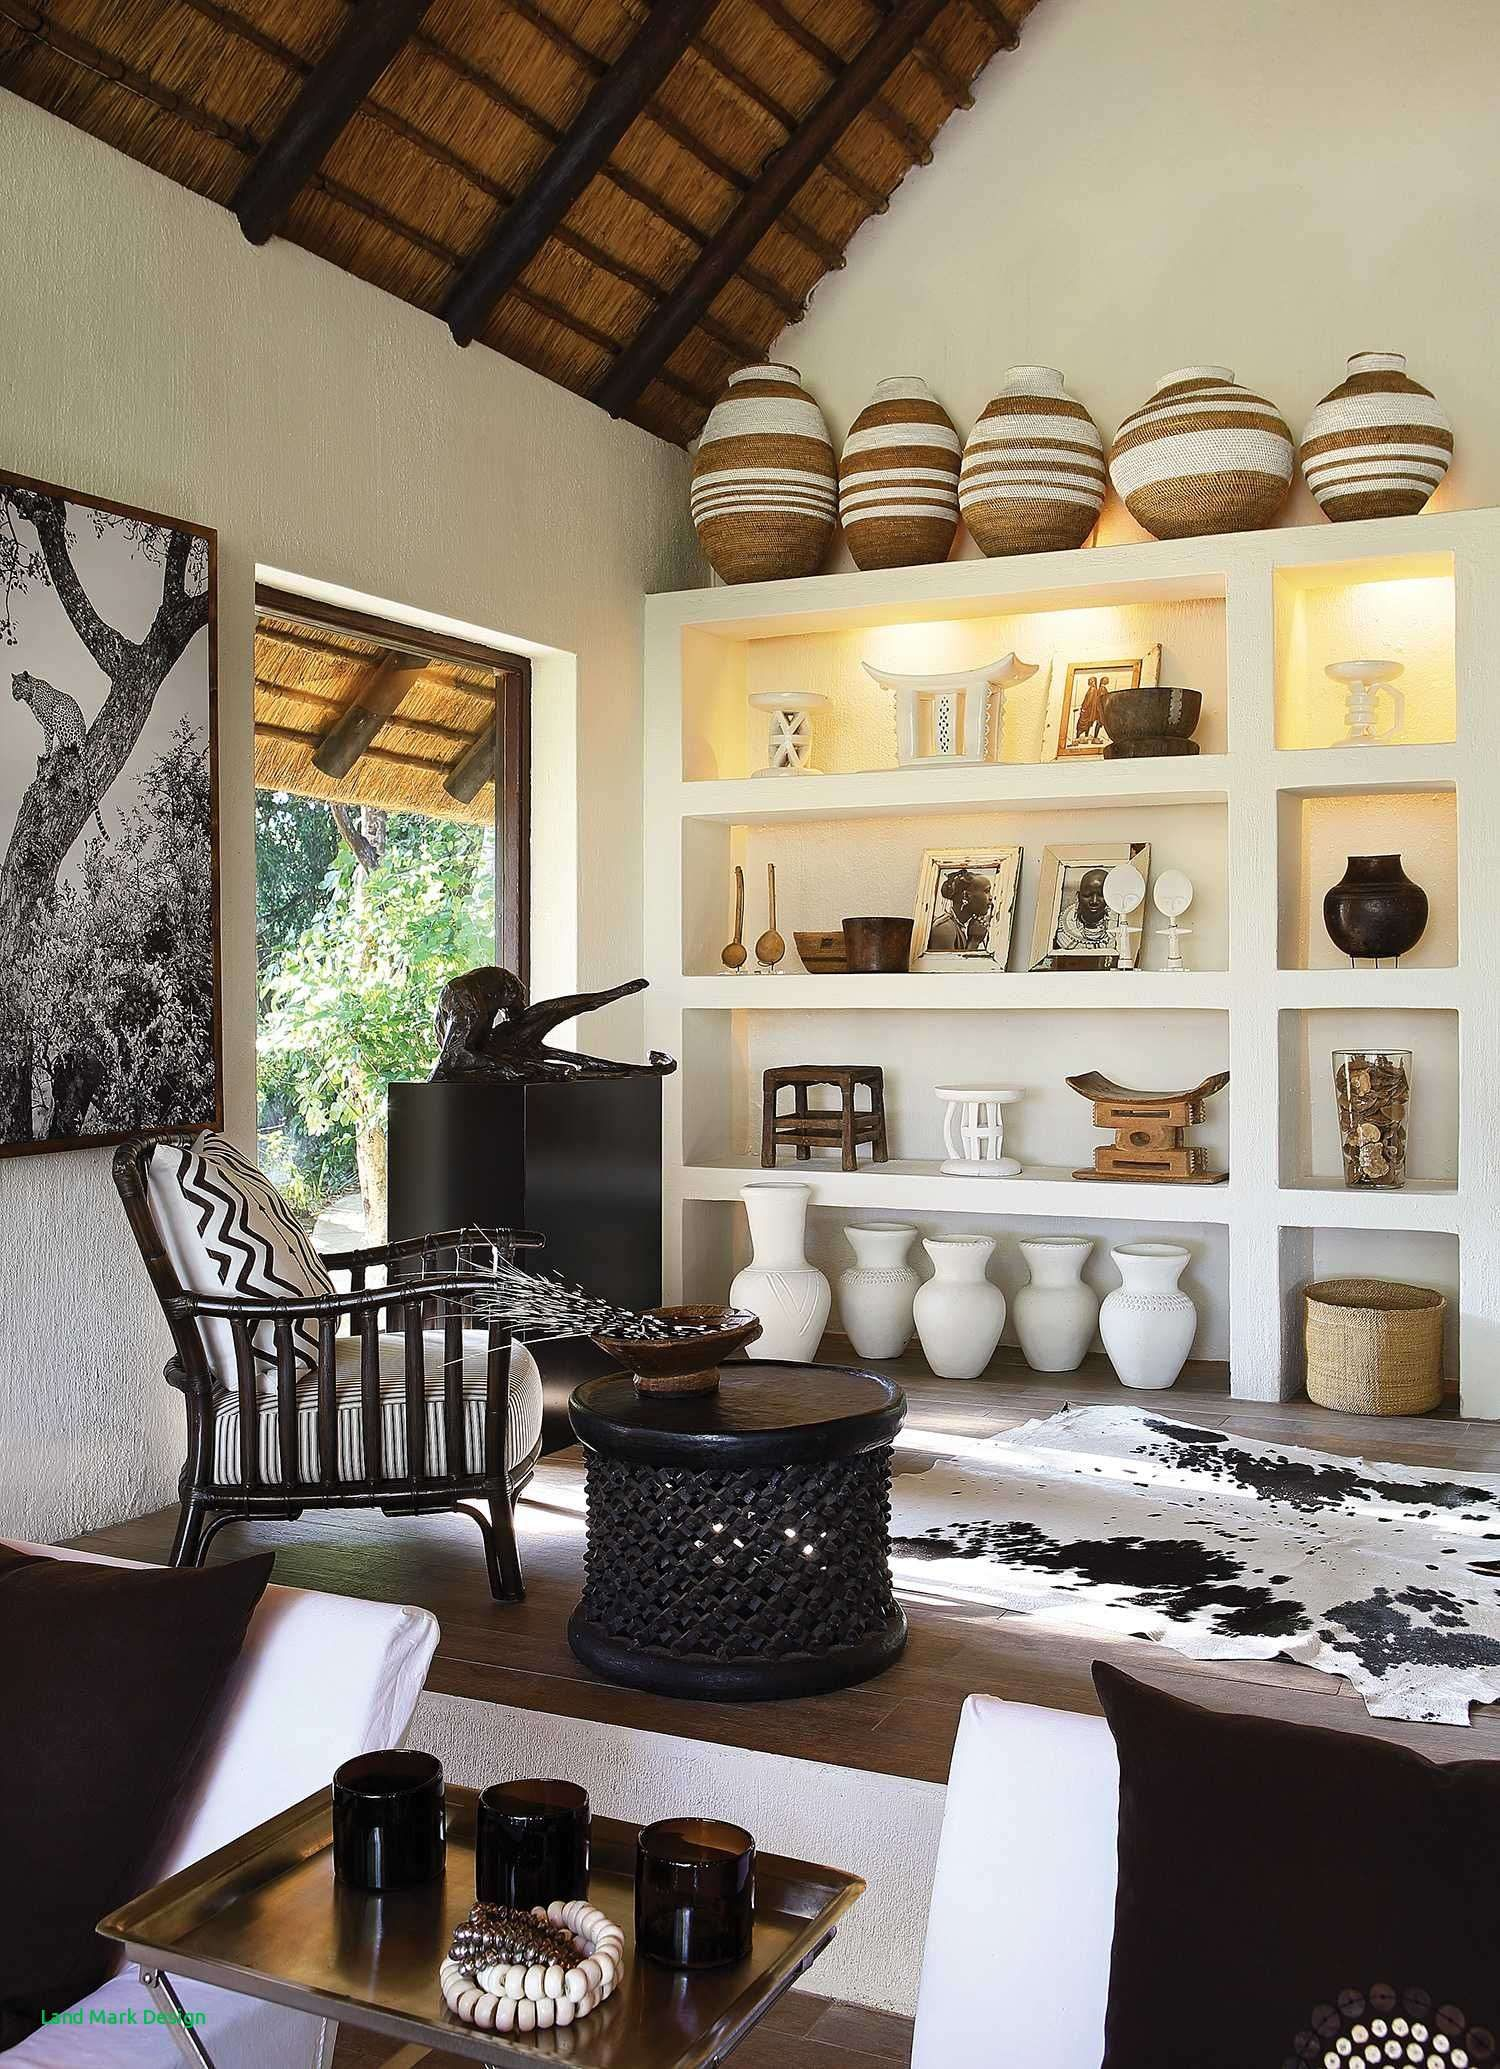 Pin By Tamara On Africa African Home Decor African Interior